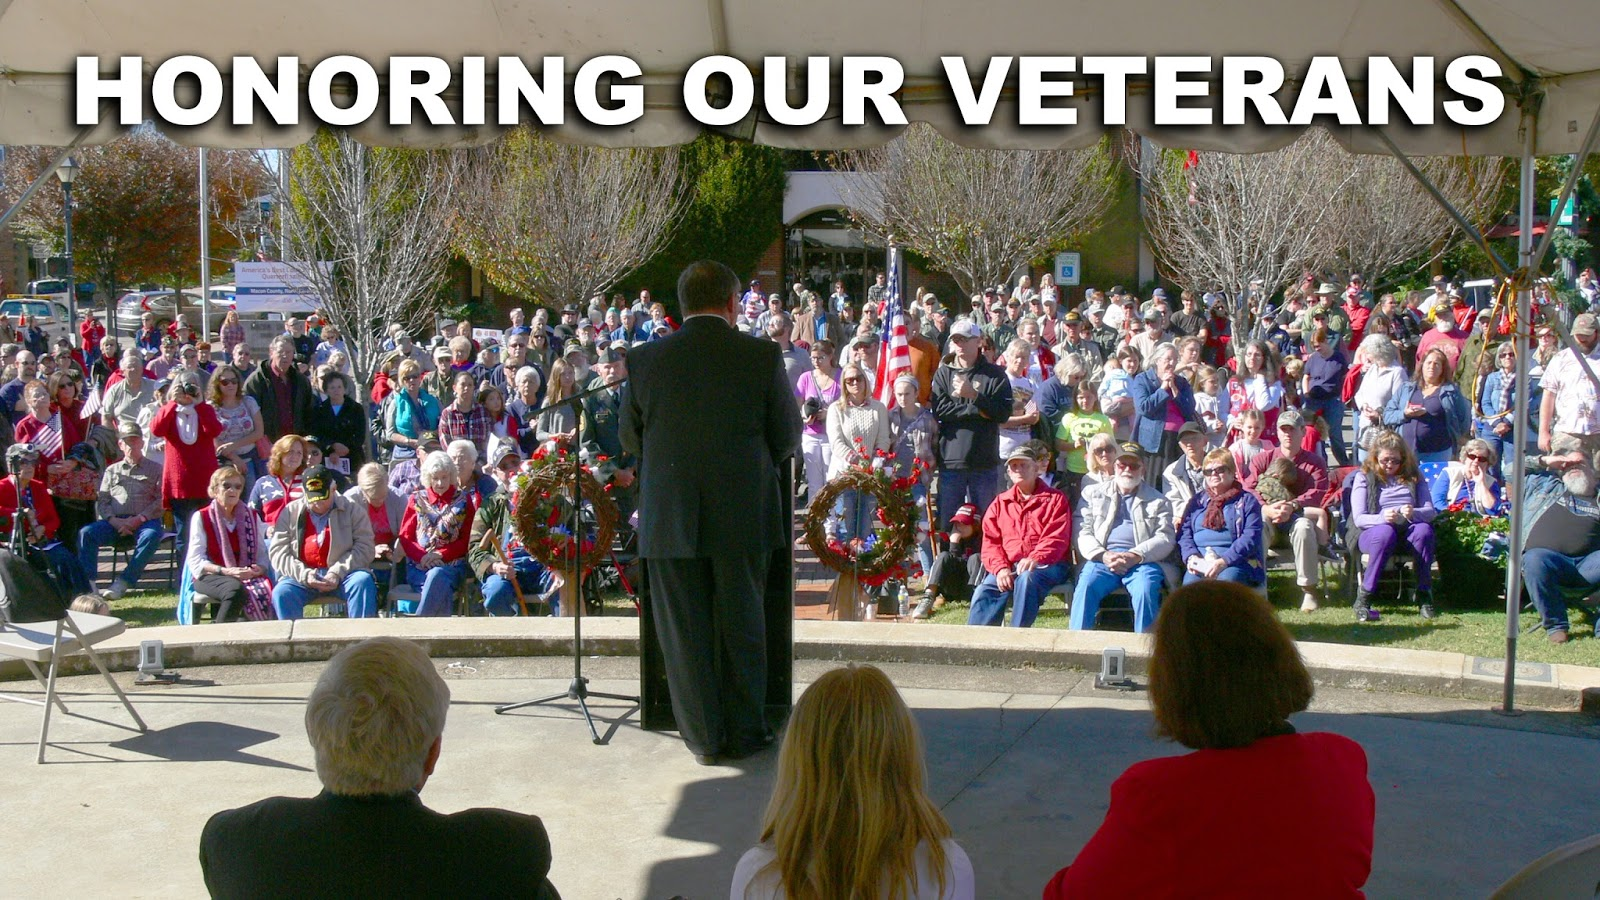 Retired Air Force Officer Gary Dills delivers the keynote address at the 2015 Veterans Day Ceremony in Franklin